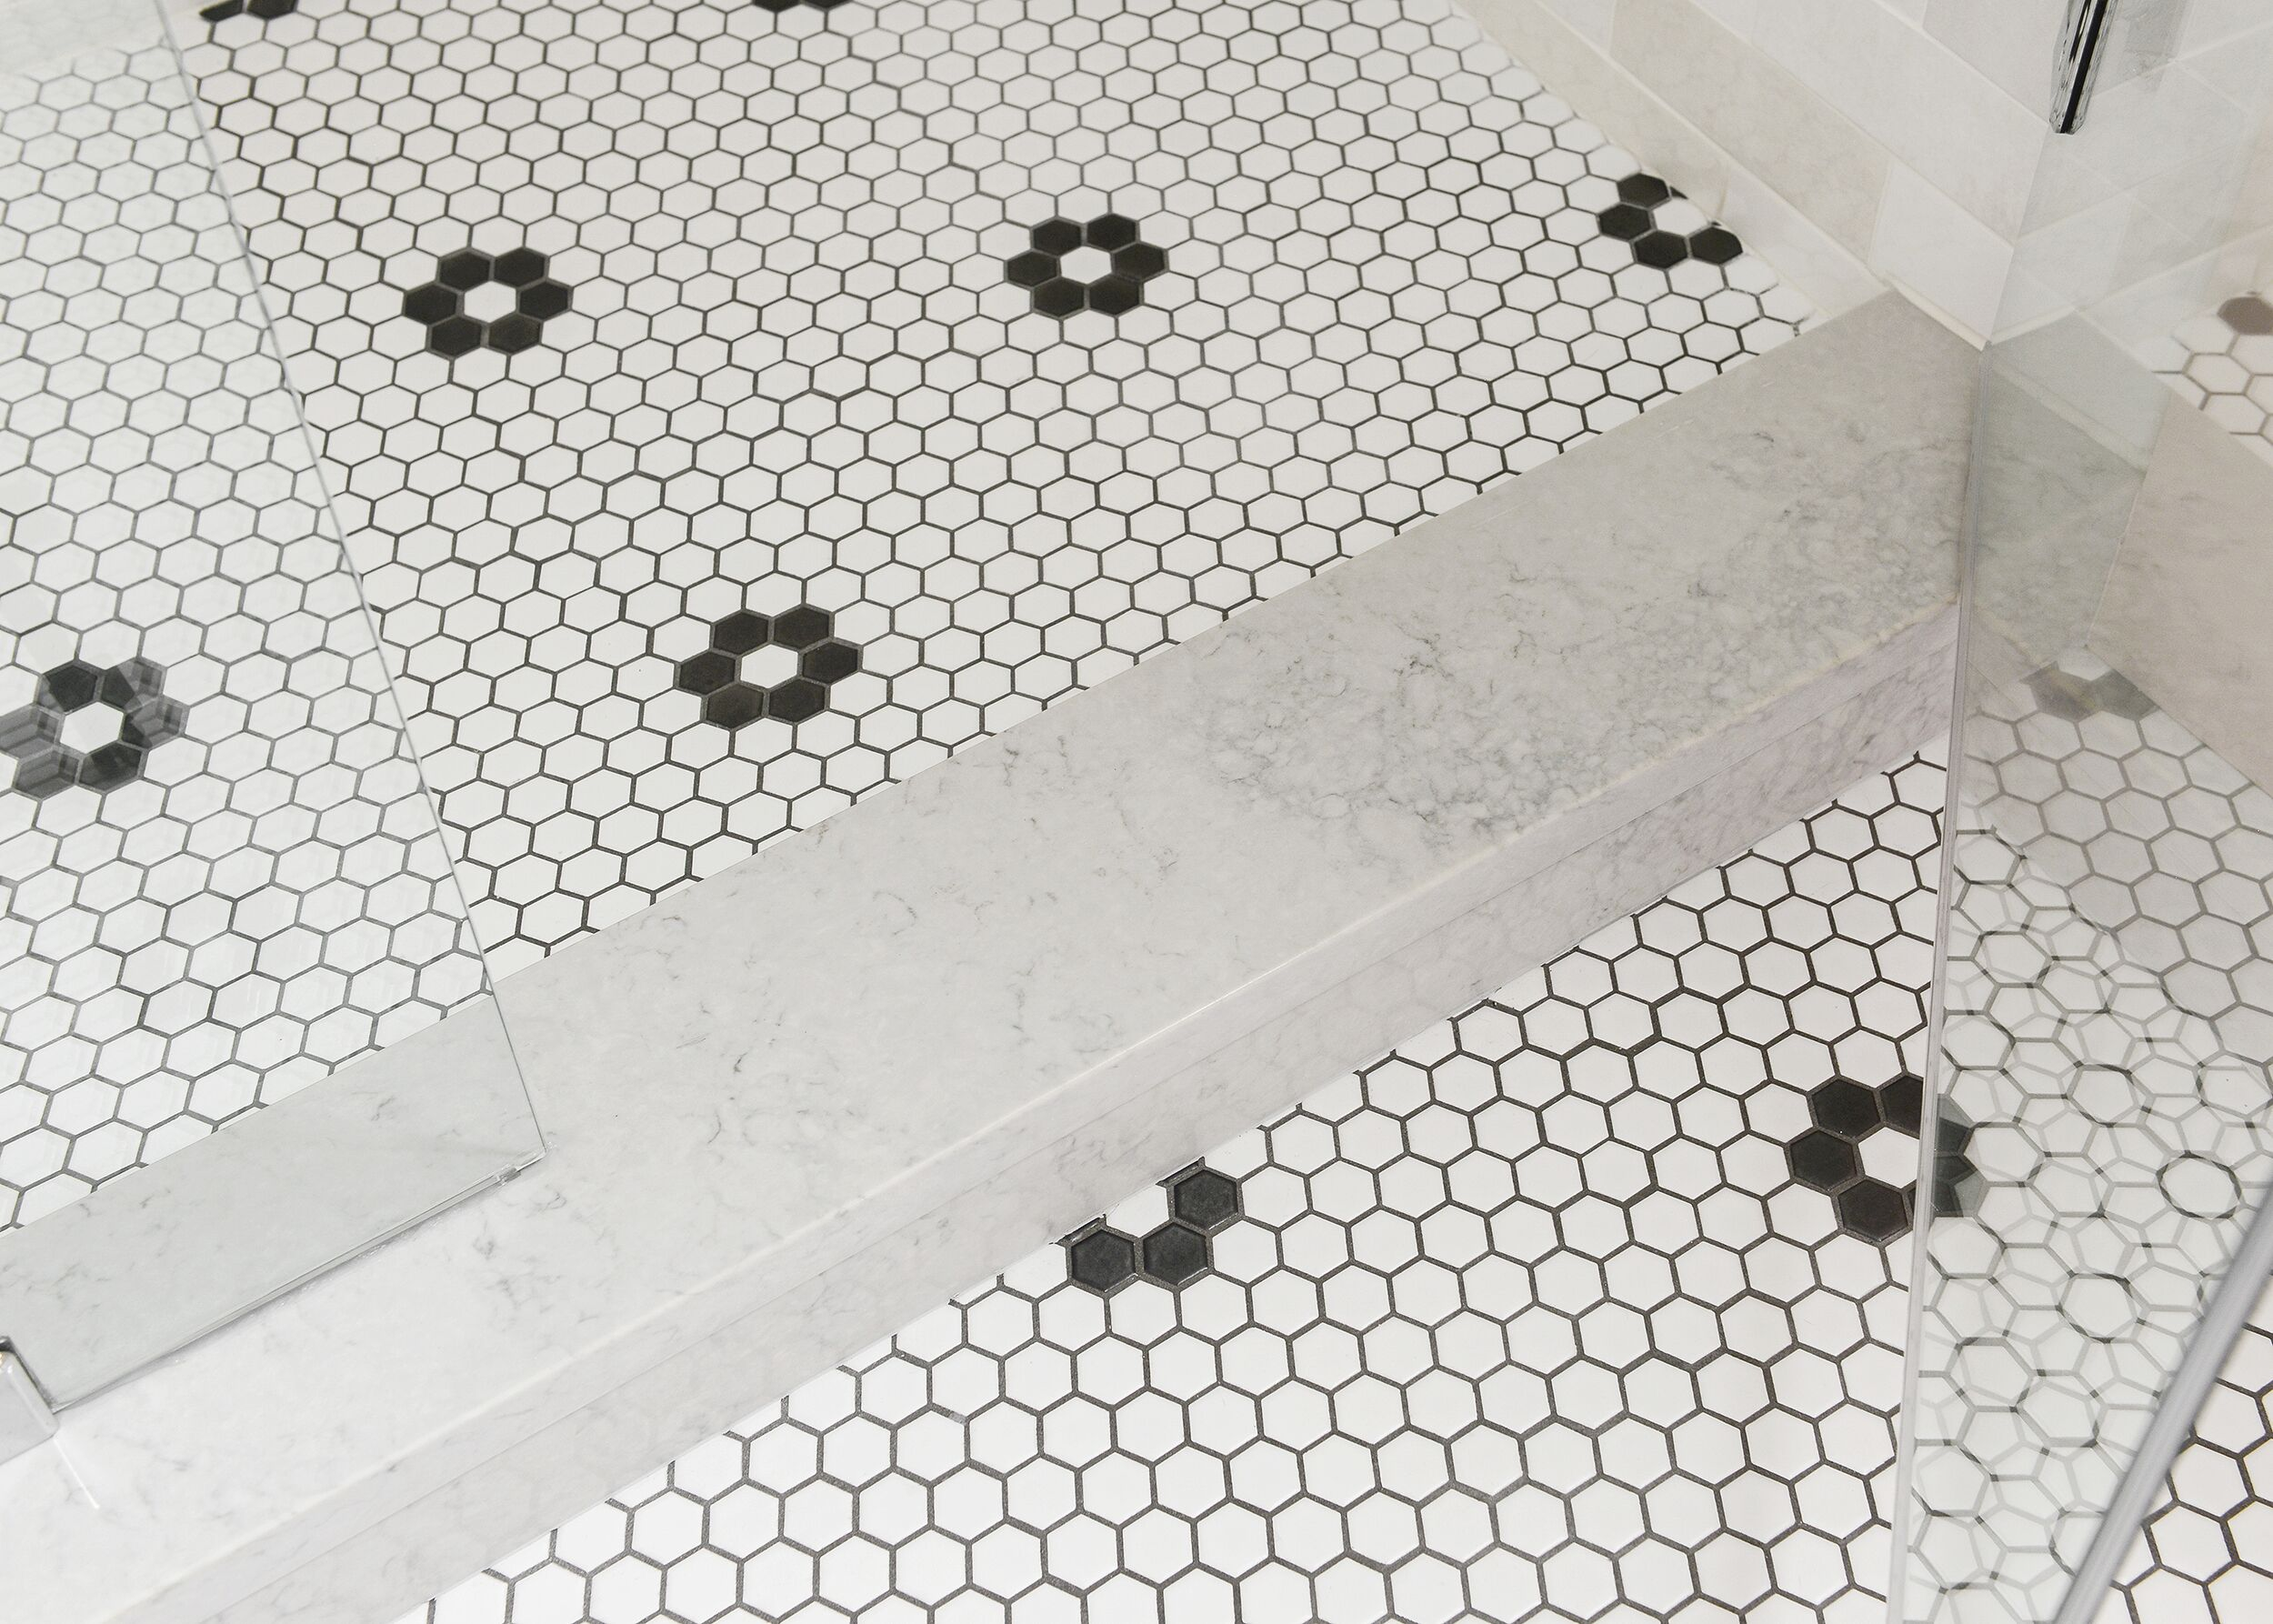 Shower floor with while round tiles and black accent